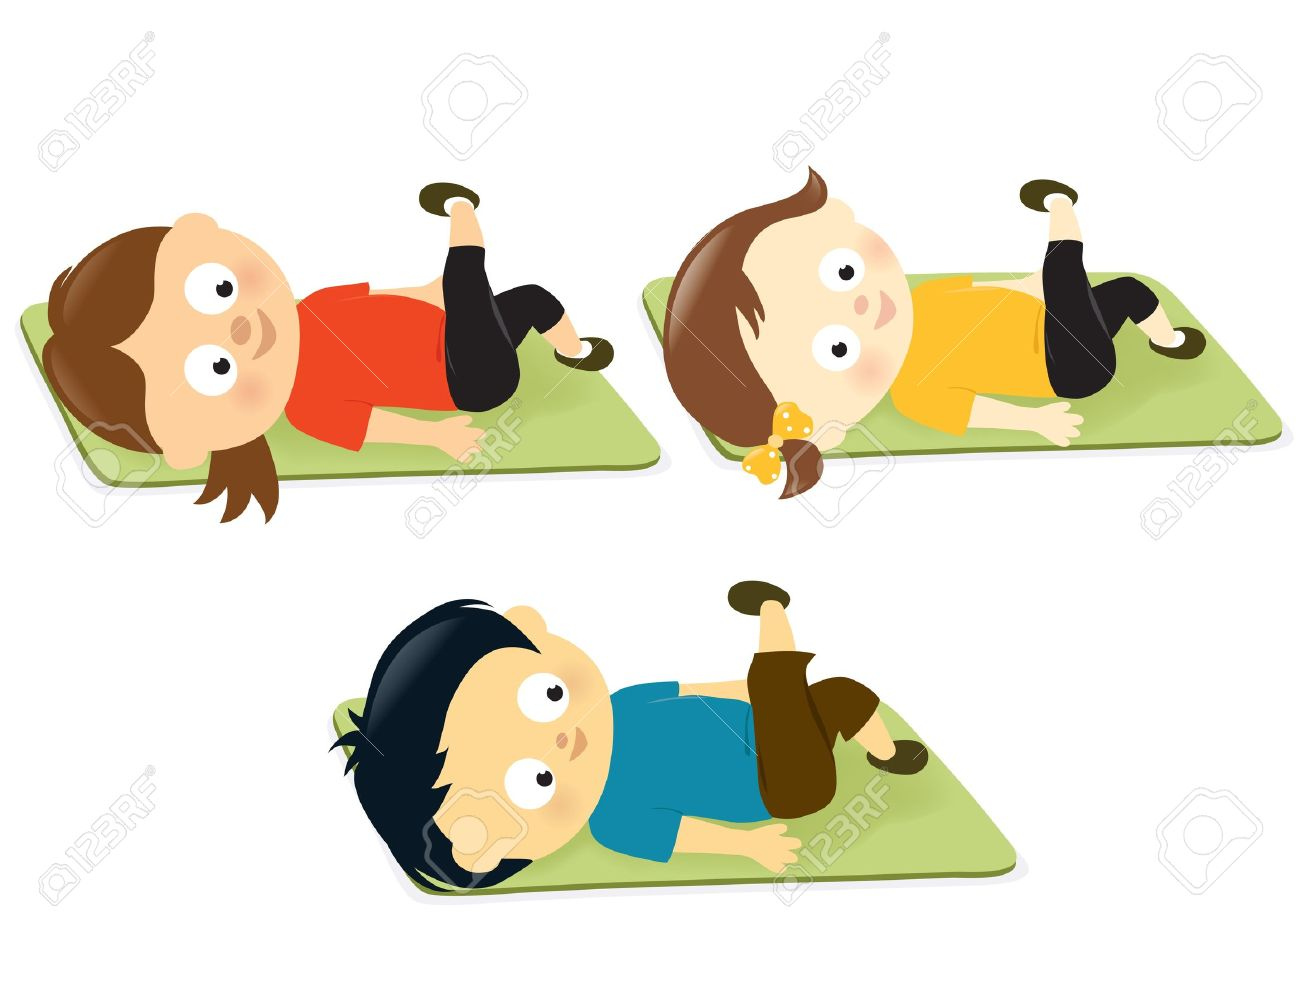 Illustration Of Kids Exercising On Mats Royalty Free Cliparts